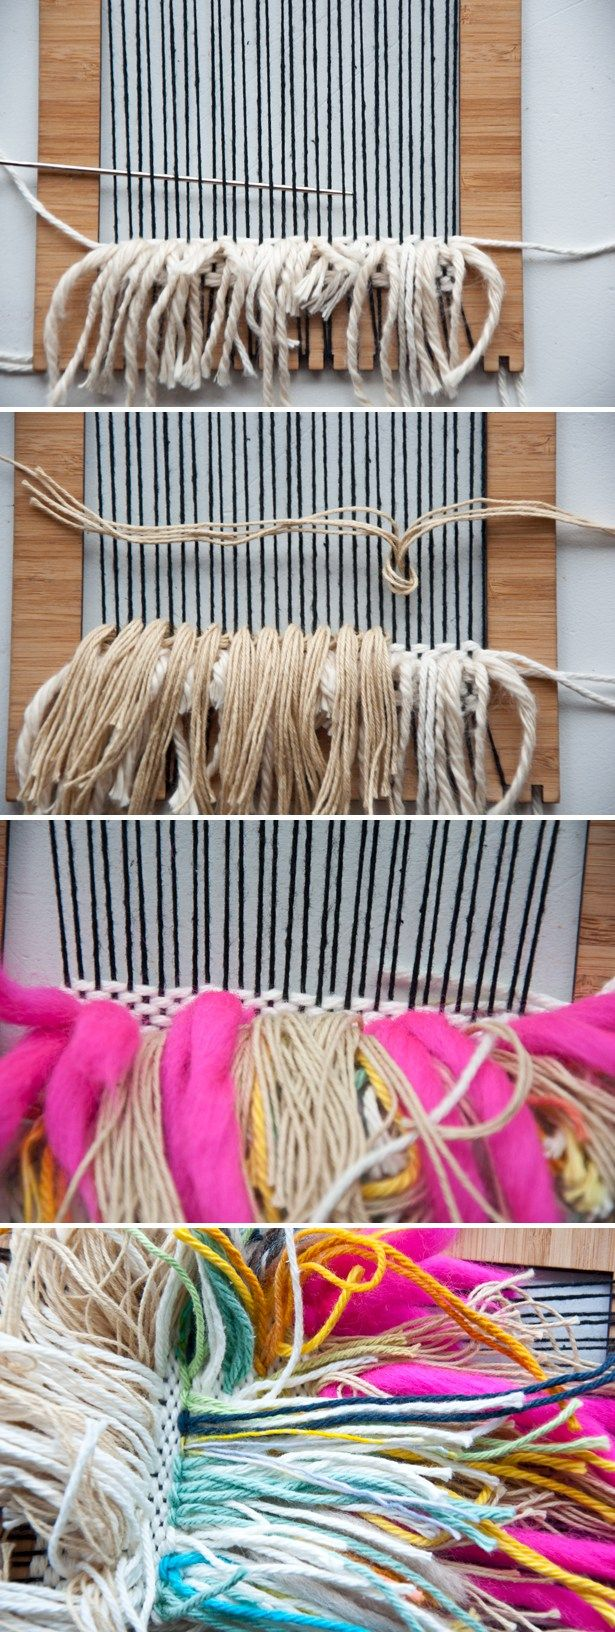 I can't wait to use up all those yarn scraps!   Shag Weave Stash Buster | The Weaving Loom